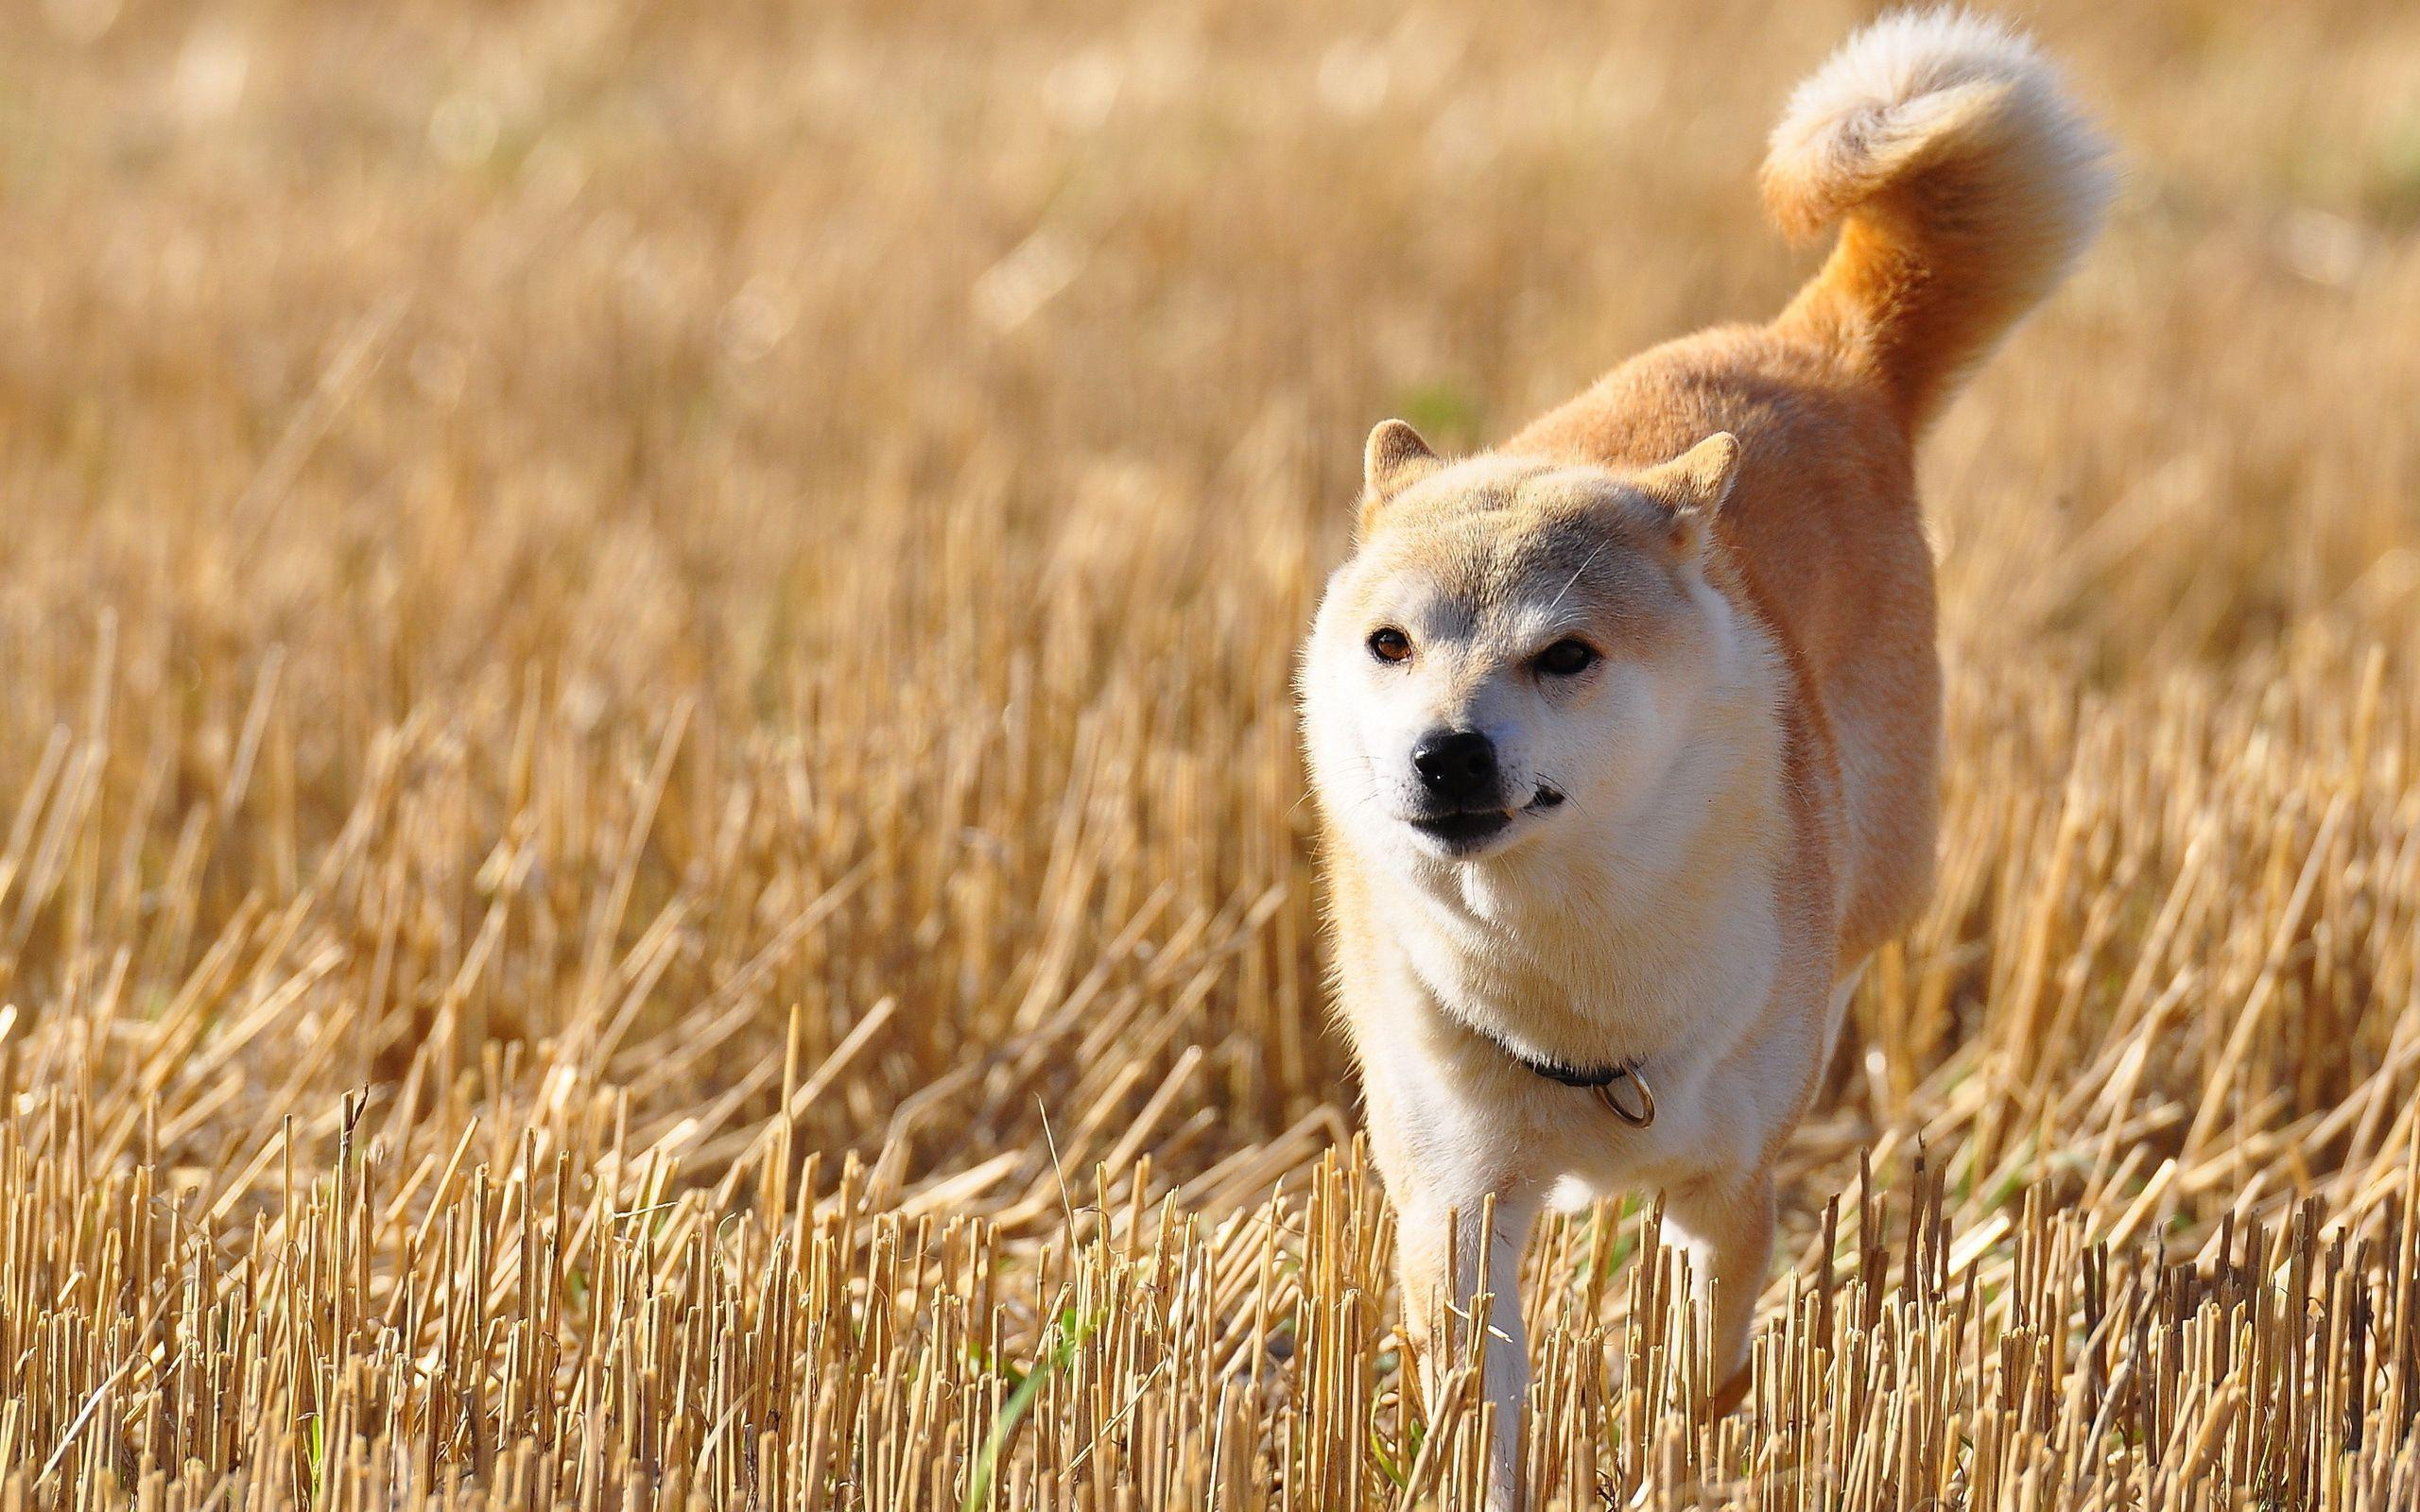 Shiba Inu Cute Desktop Wallpaper Hd Shiba Inu Walking On The Fied Wallpaper Download Free